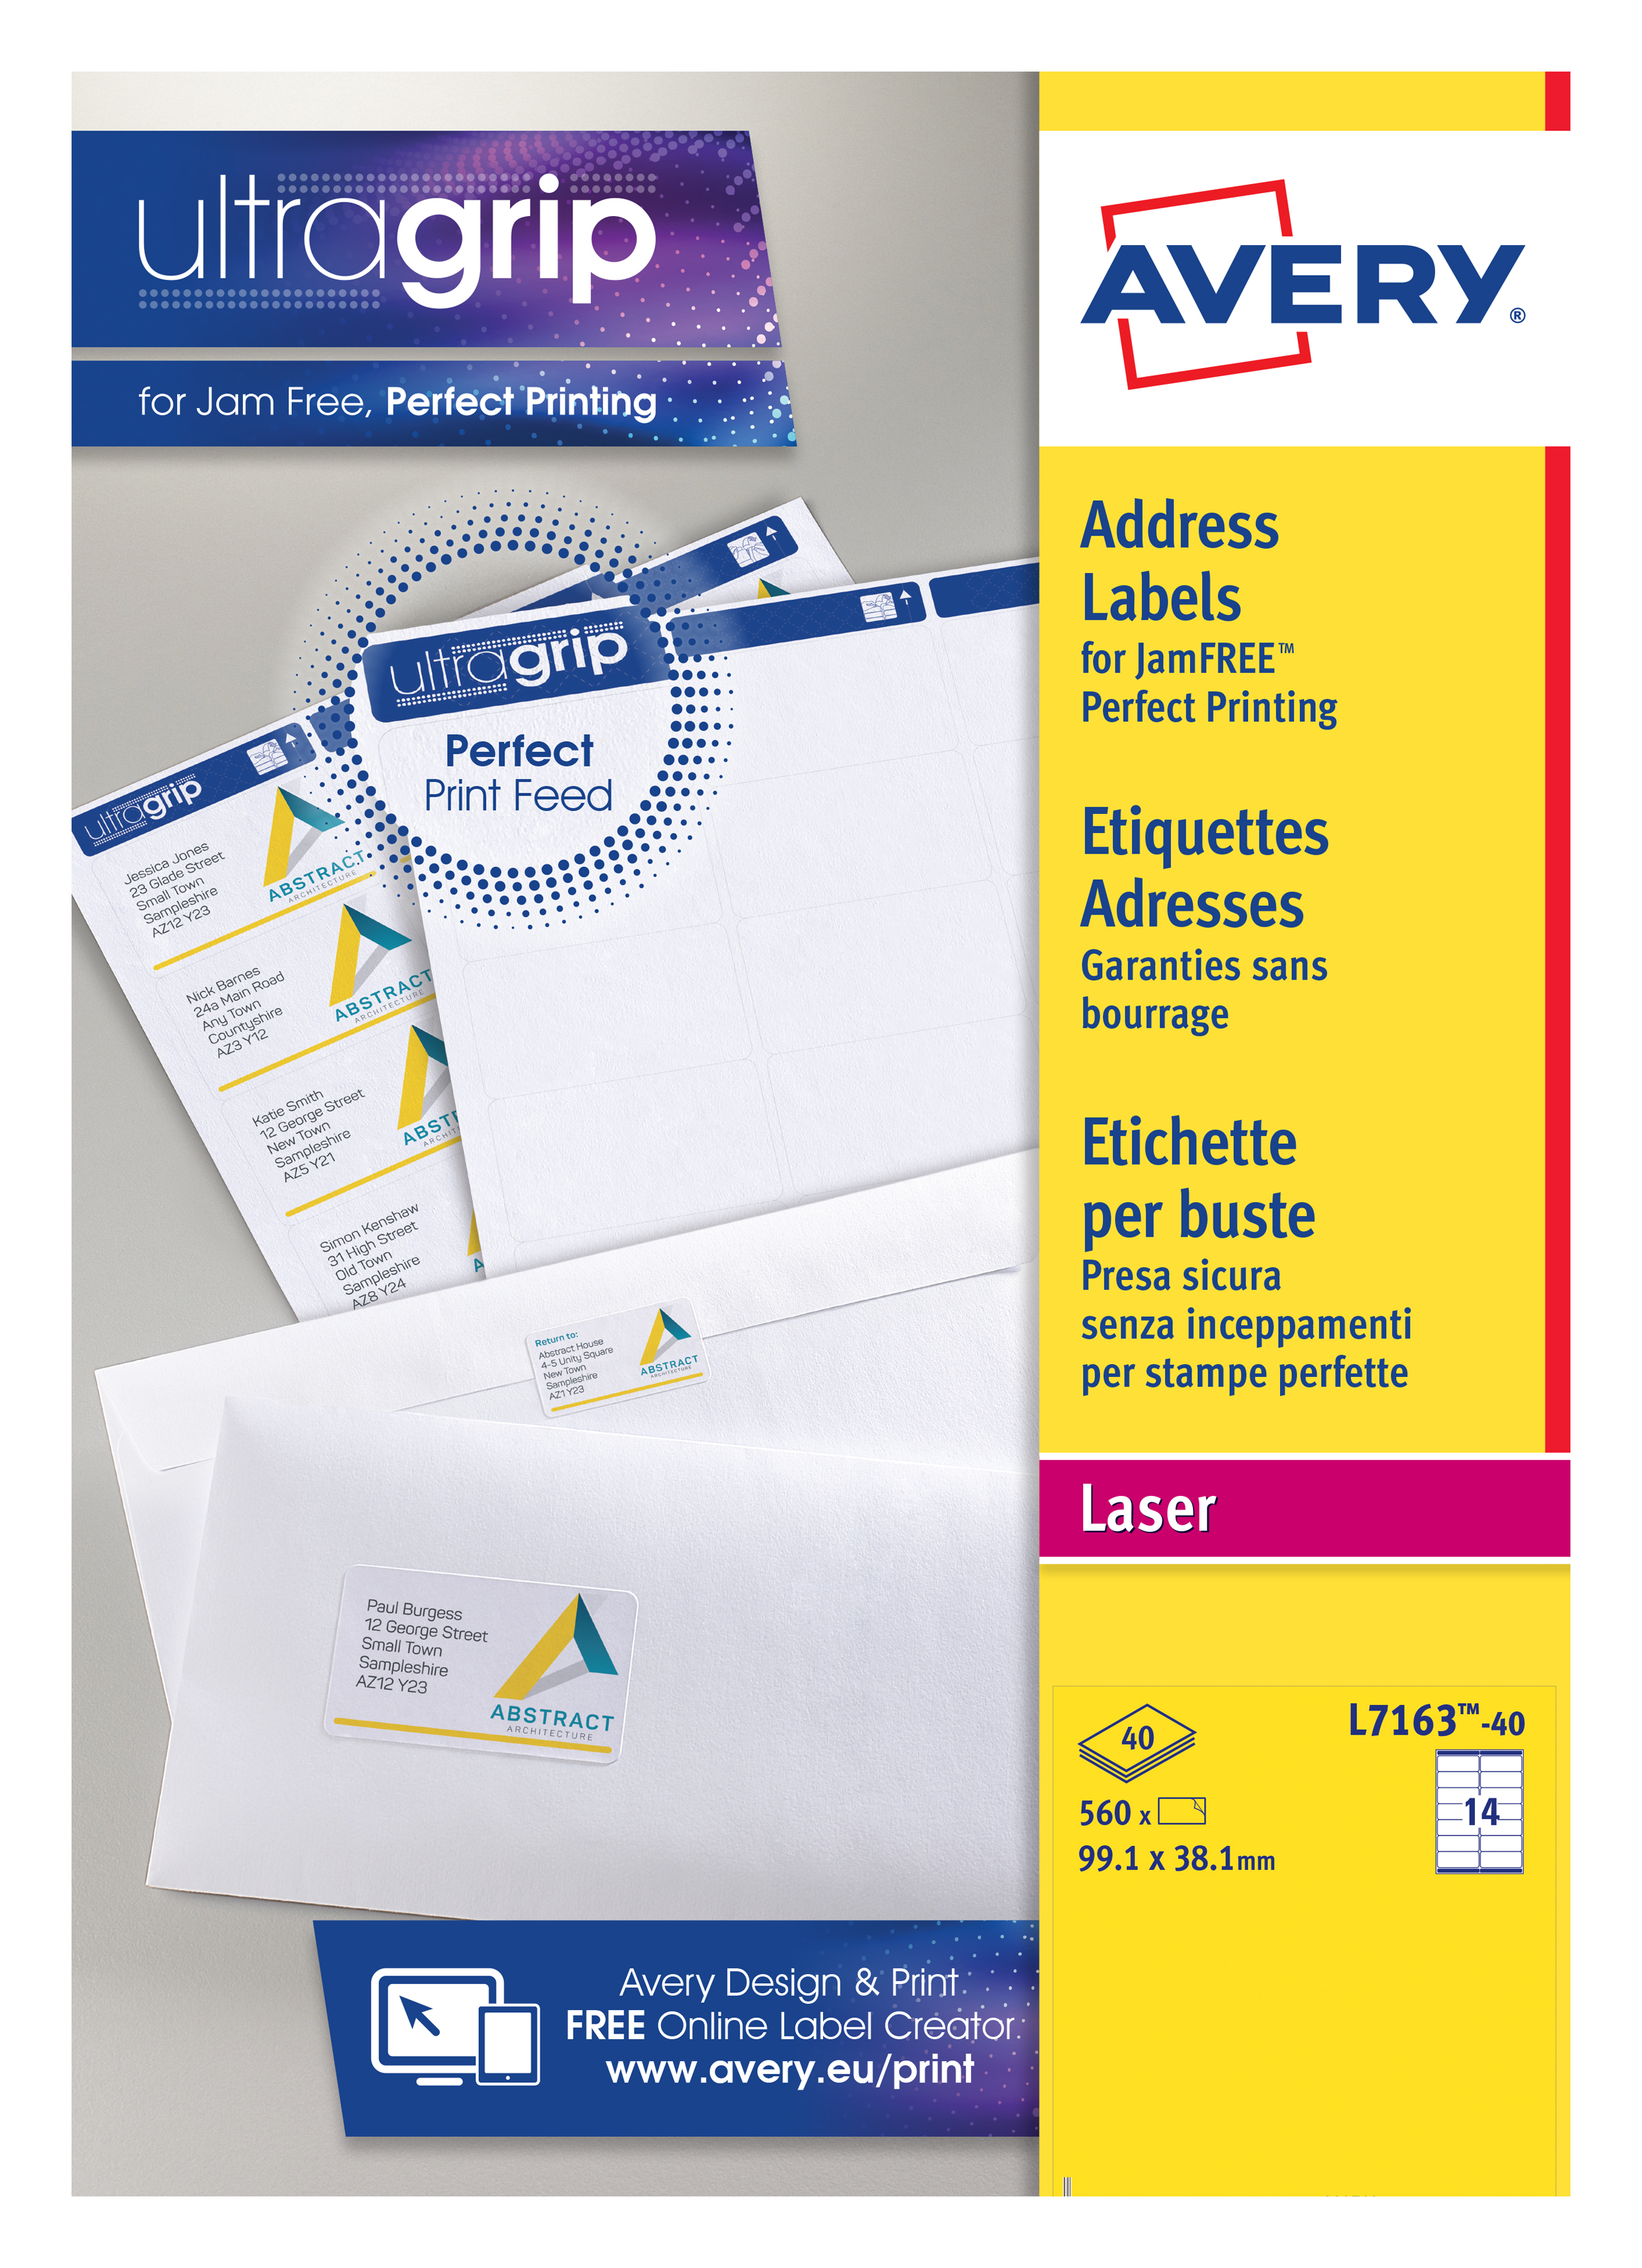 avery laser address labels quickpeel 99 1x38 1mm 14 per